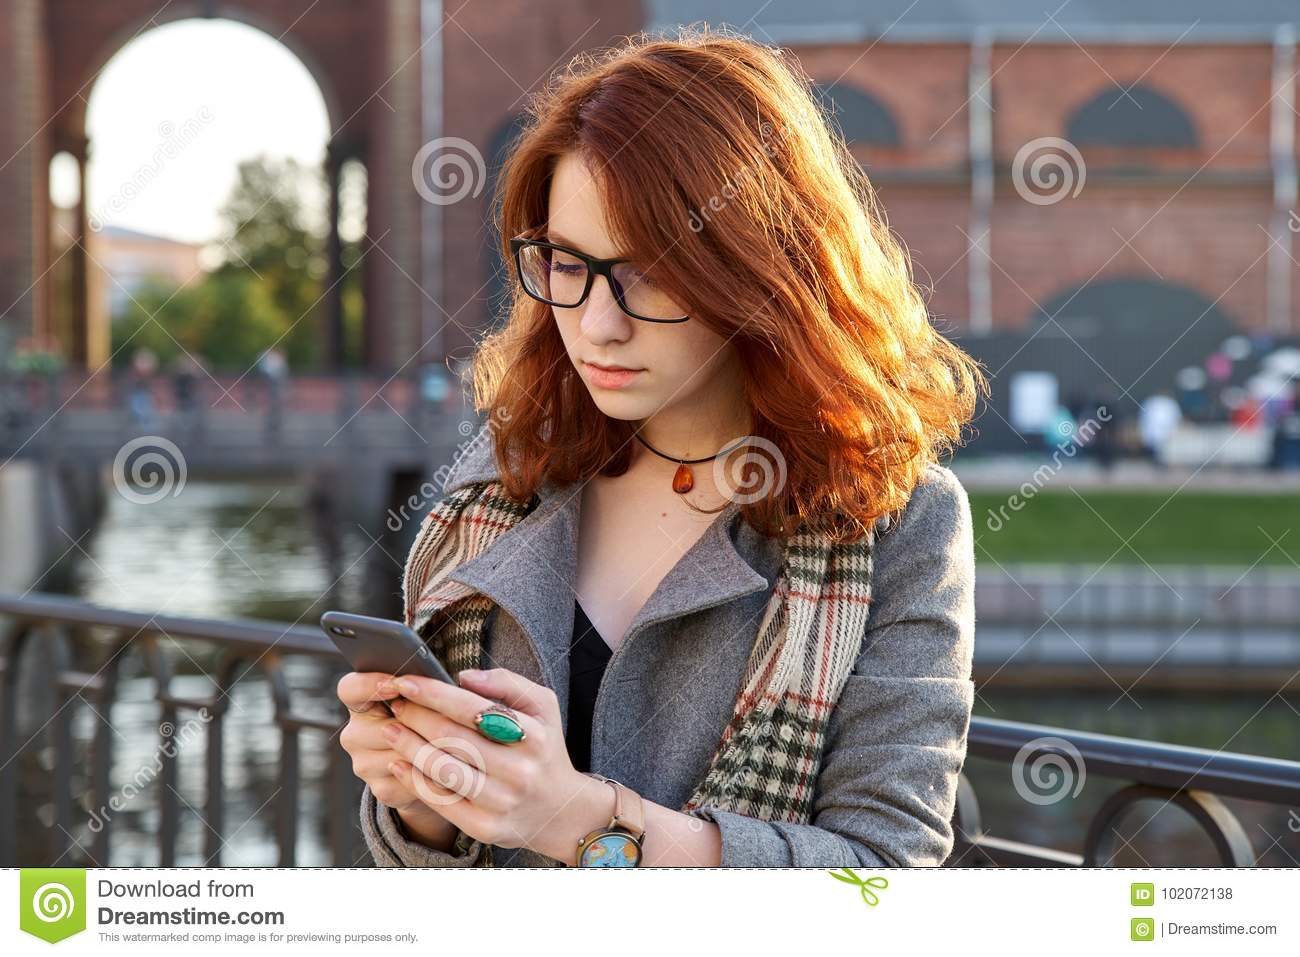 Modern redhead young woman in park in autumn using smart phone. girl with curly ginger hairstyle, texting, smiling, standing outdo